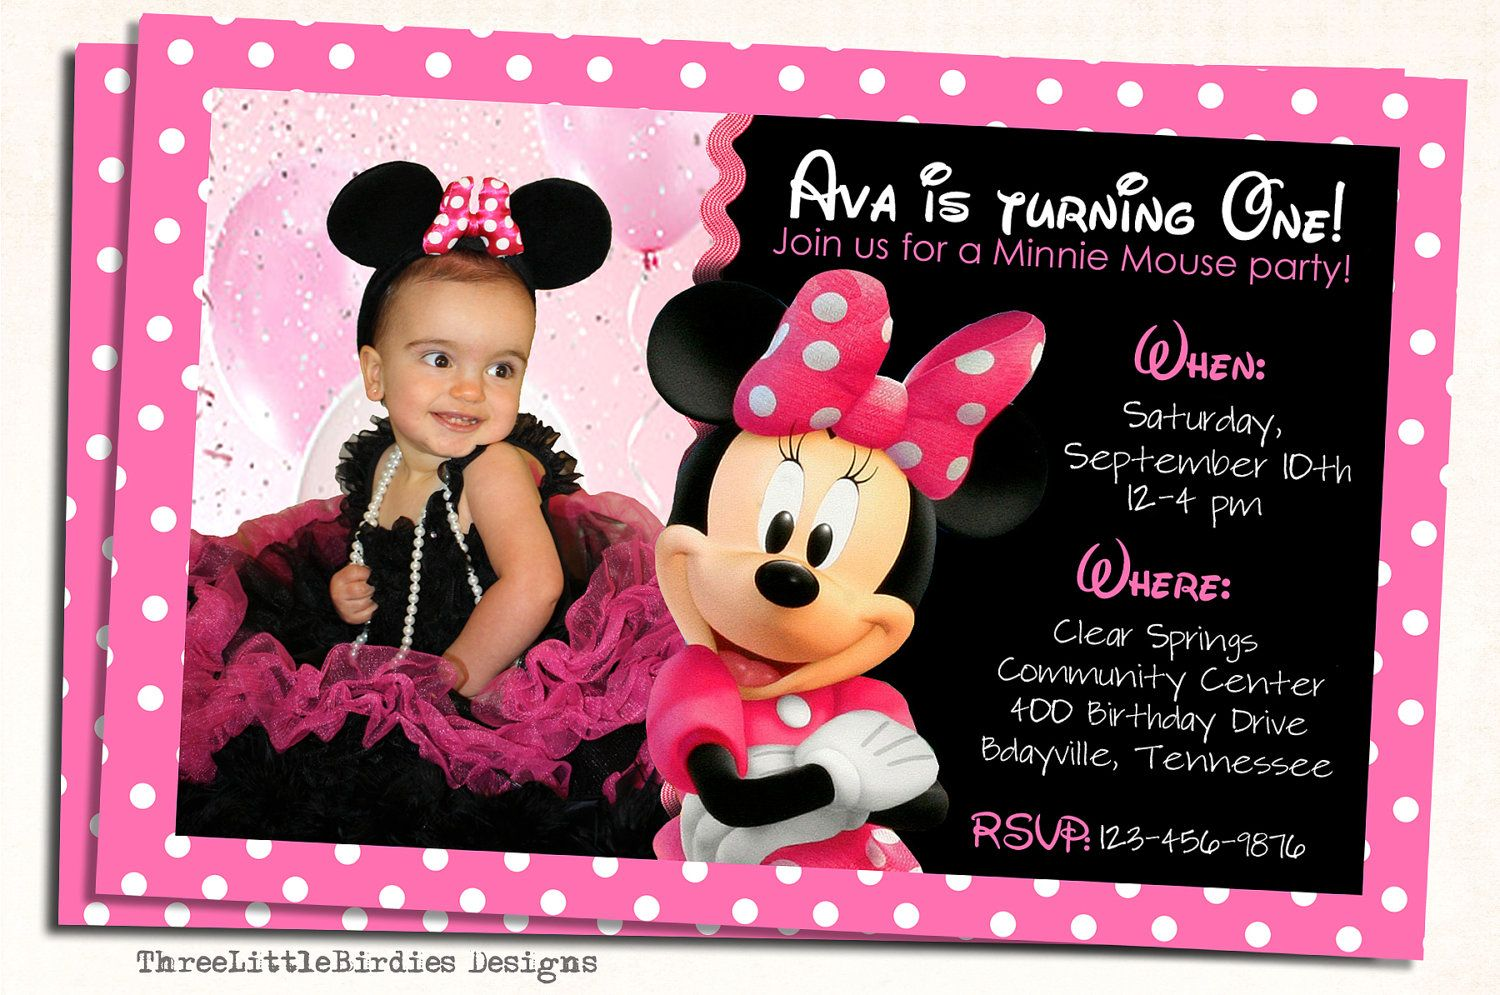 Minnie mouse birthday invitation minnie mouse birthday invitations minnie mouse birthday invitation filmwisefo Choice Image